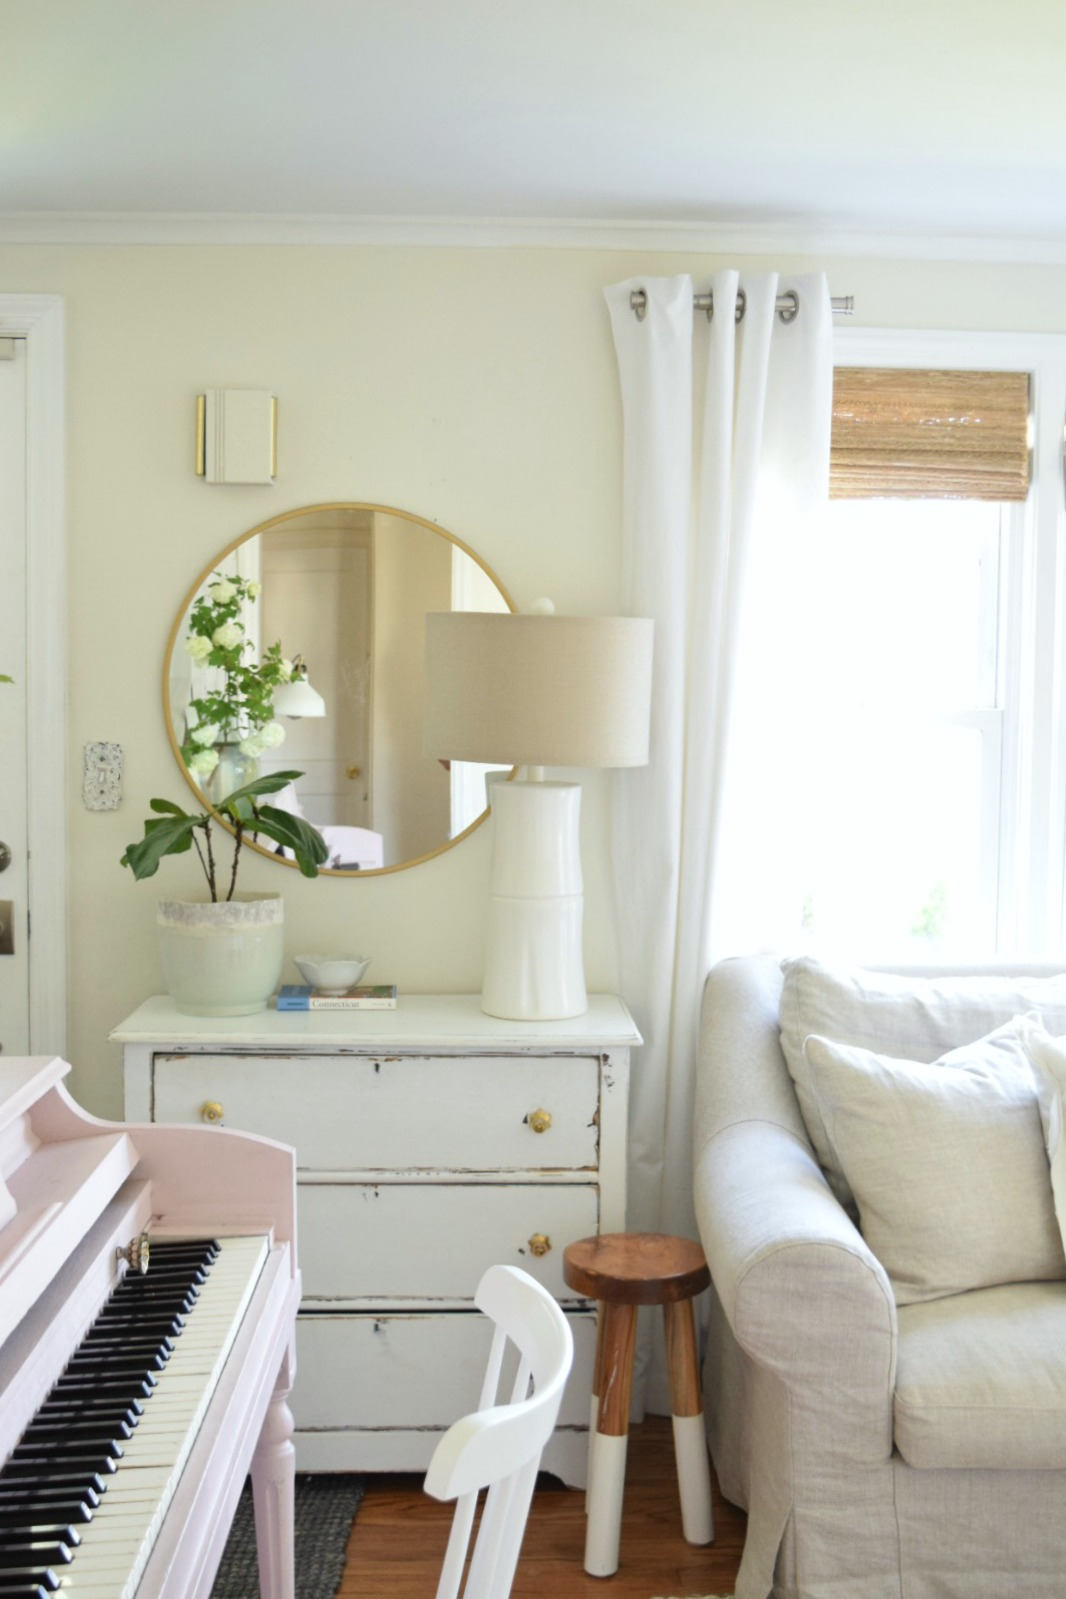 Target Mirror That Everyone Should Own- Three Different Ways to Decorate with Mirrors